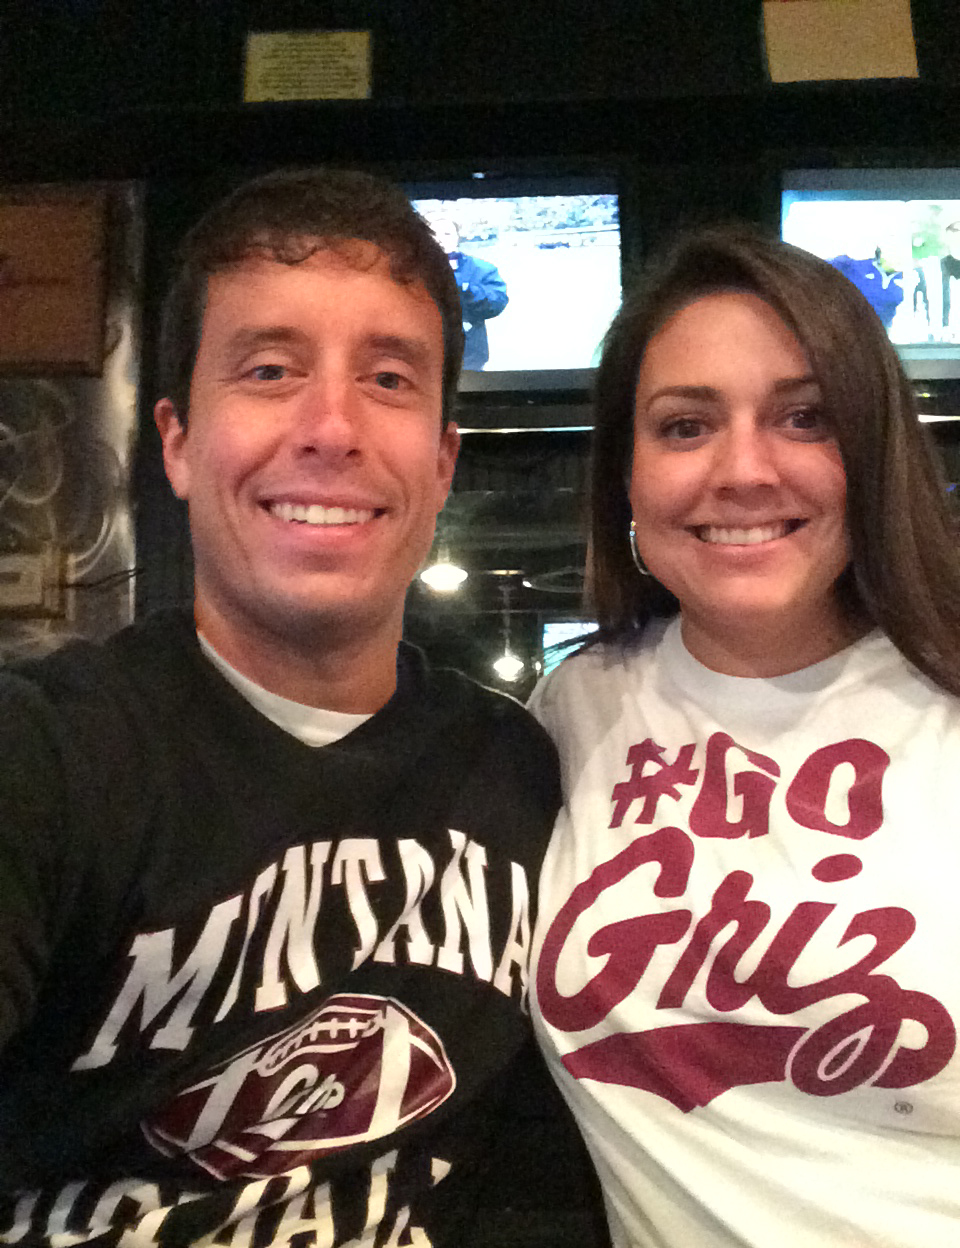 This is Sidney and I at in 2014 when we went to Remedies to watch the Montana football team play.